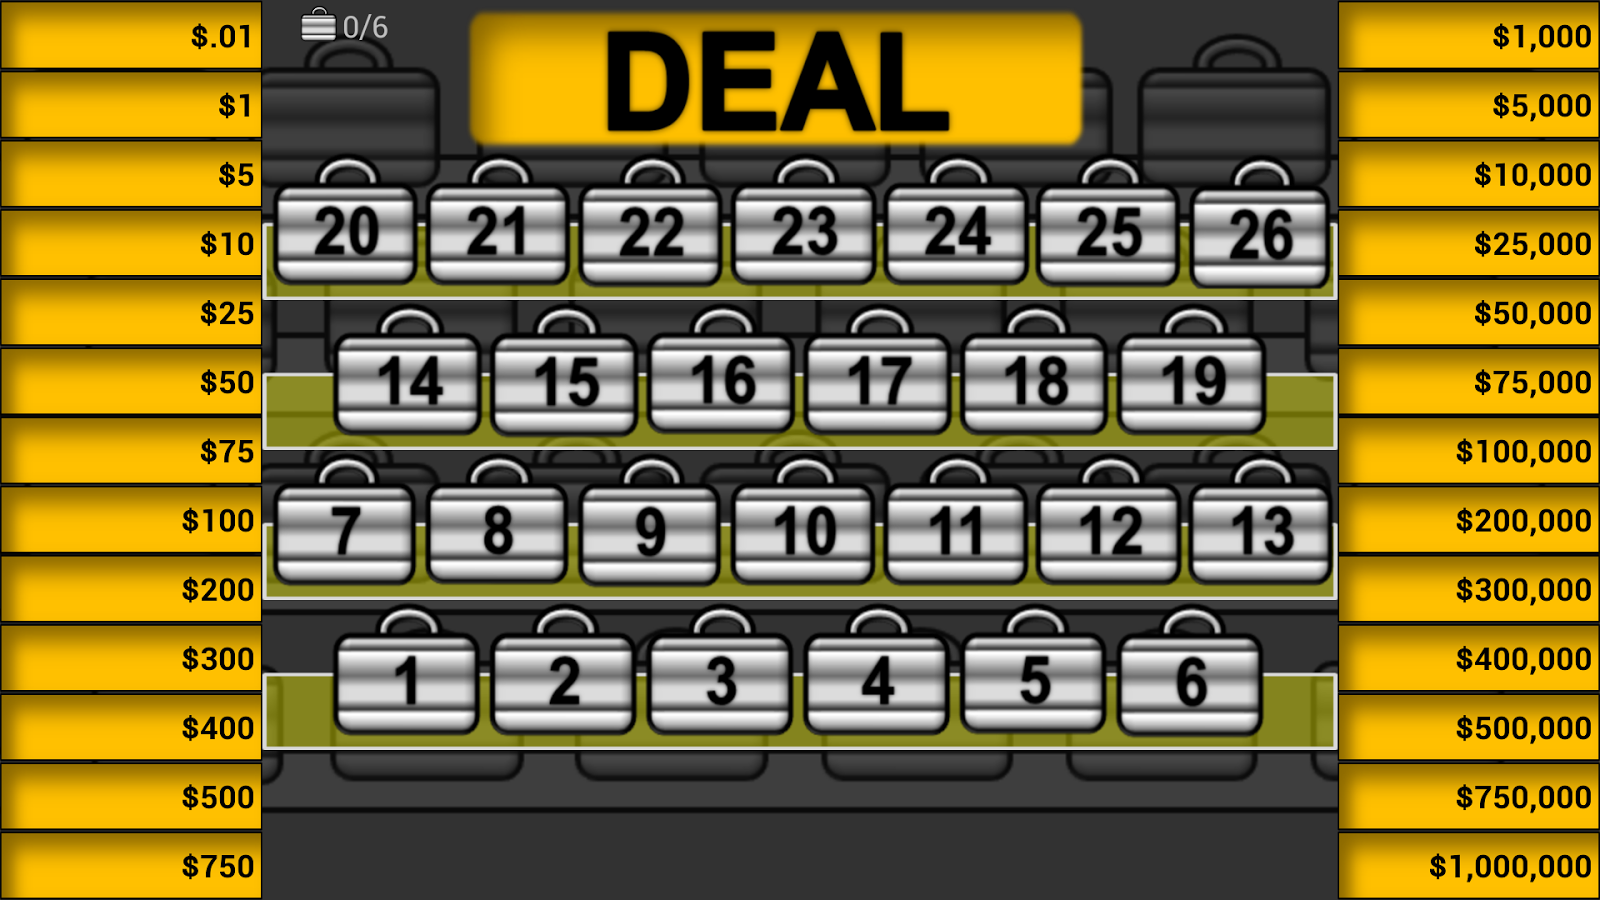 Deal - Free - screenshot